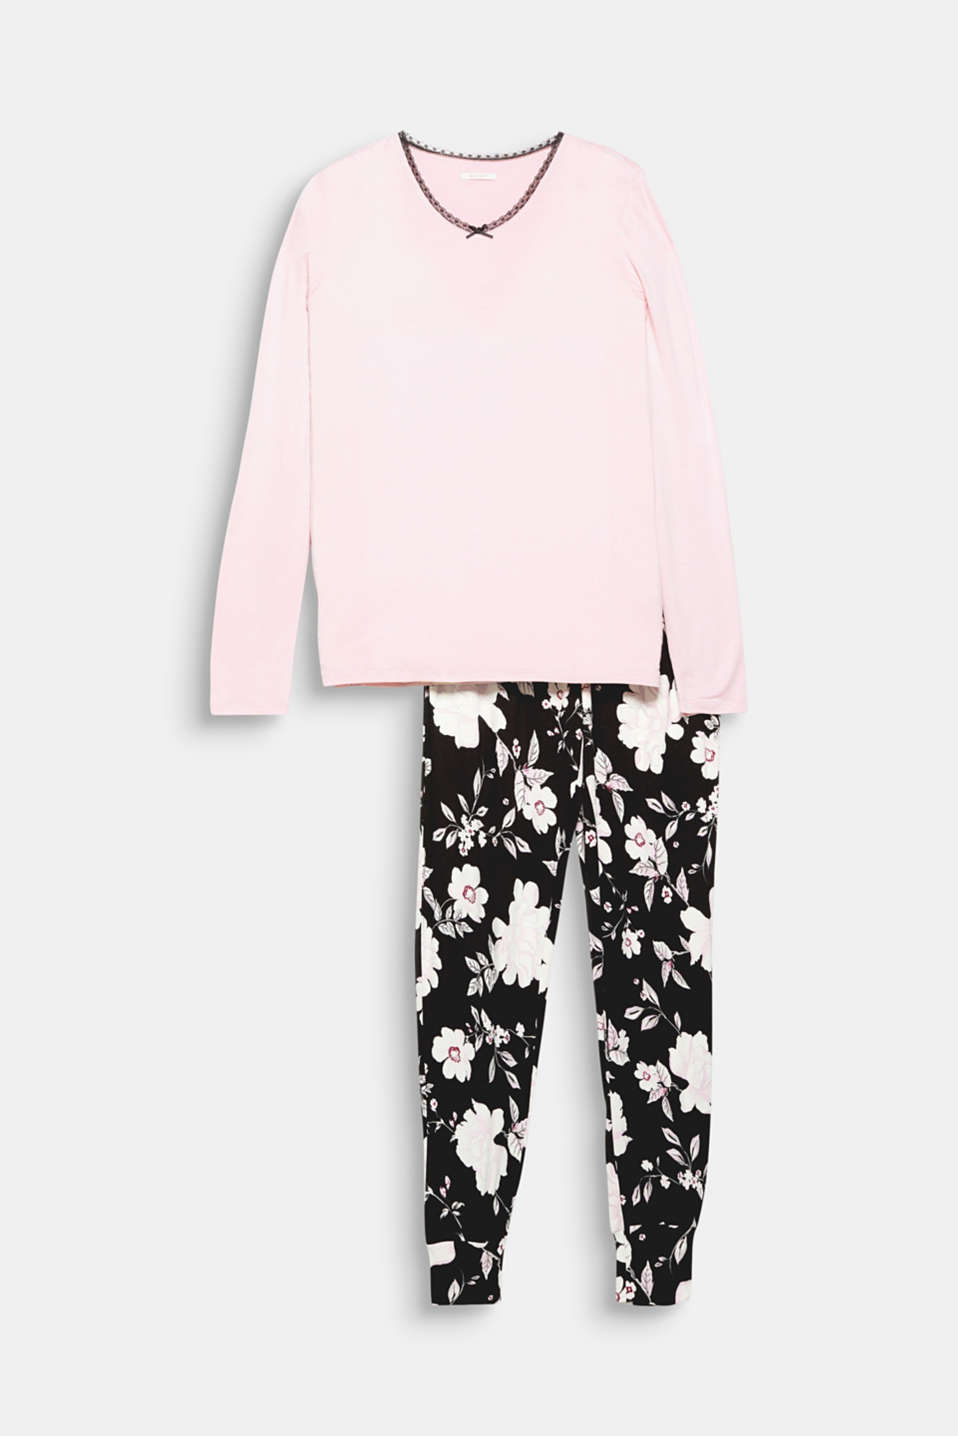 A modern floral print paired with a fine lace trim: 100% cotton pyjamas.